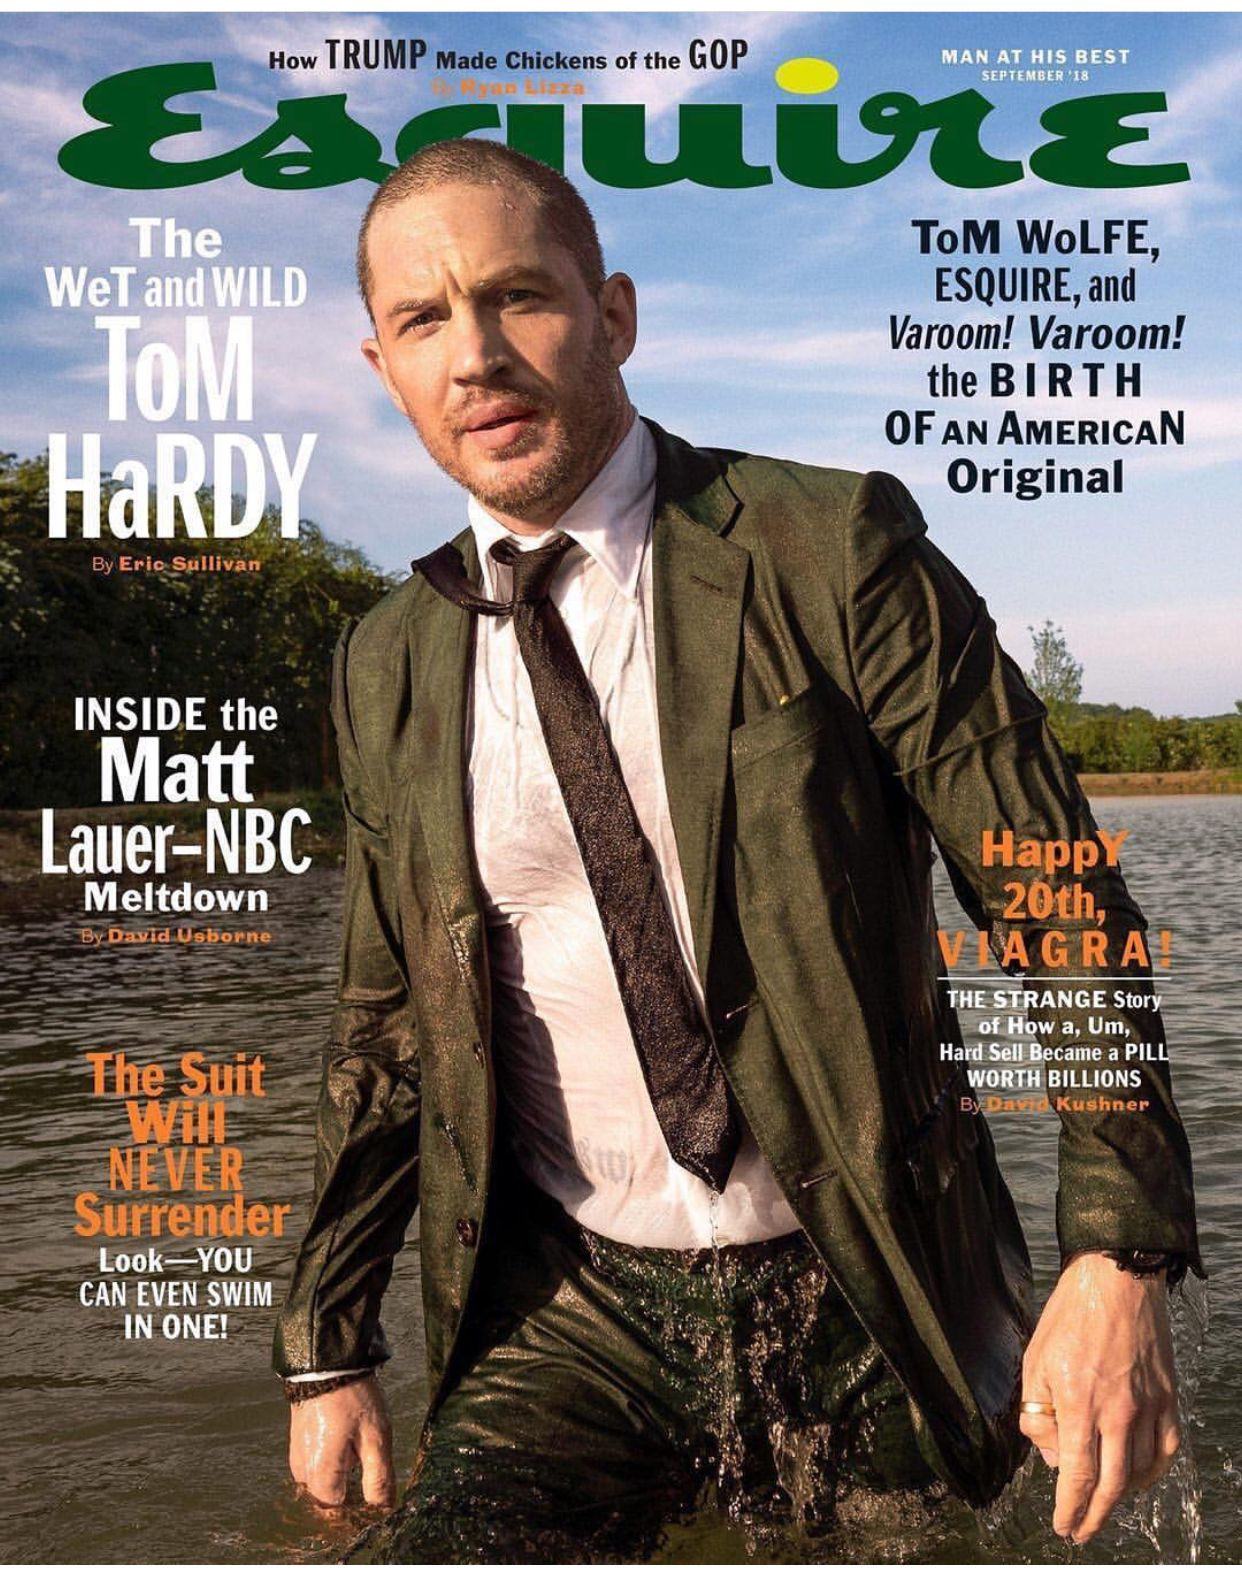 Pin by Shannon Dempsey on TOM HARDY Esquire cover, Tom